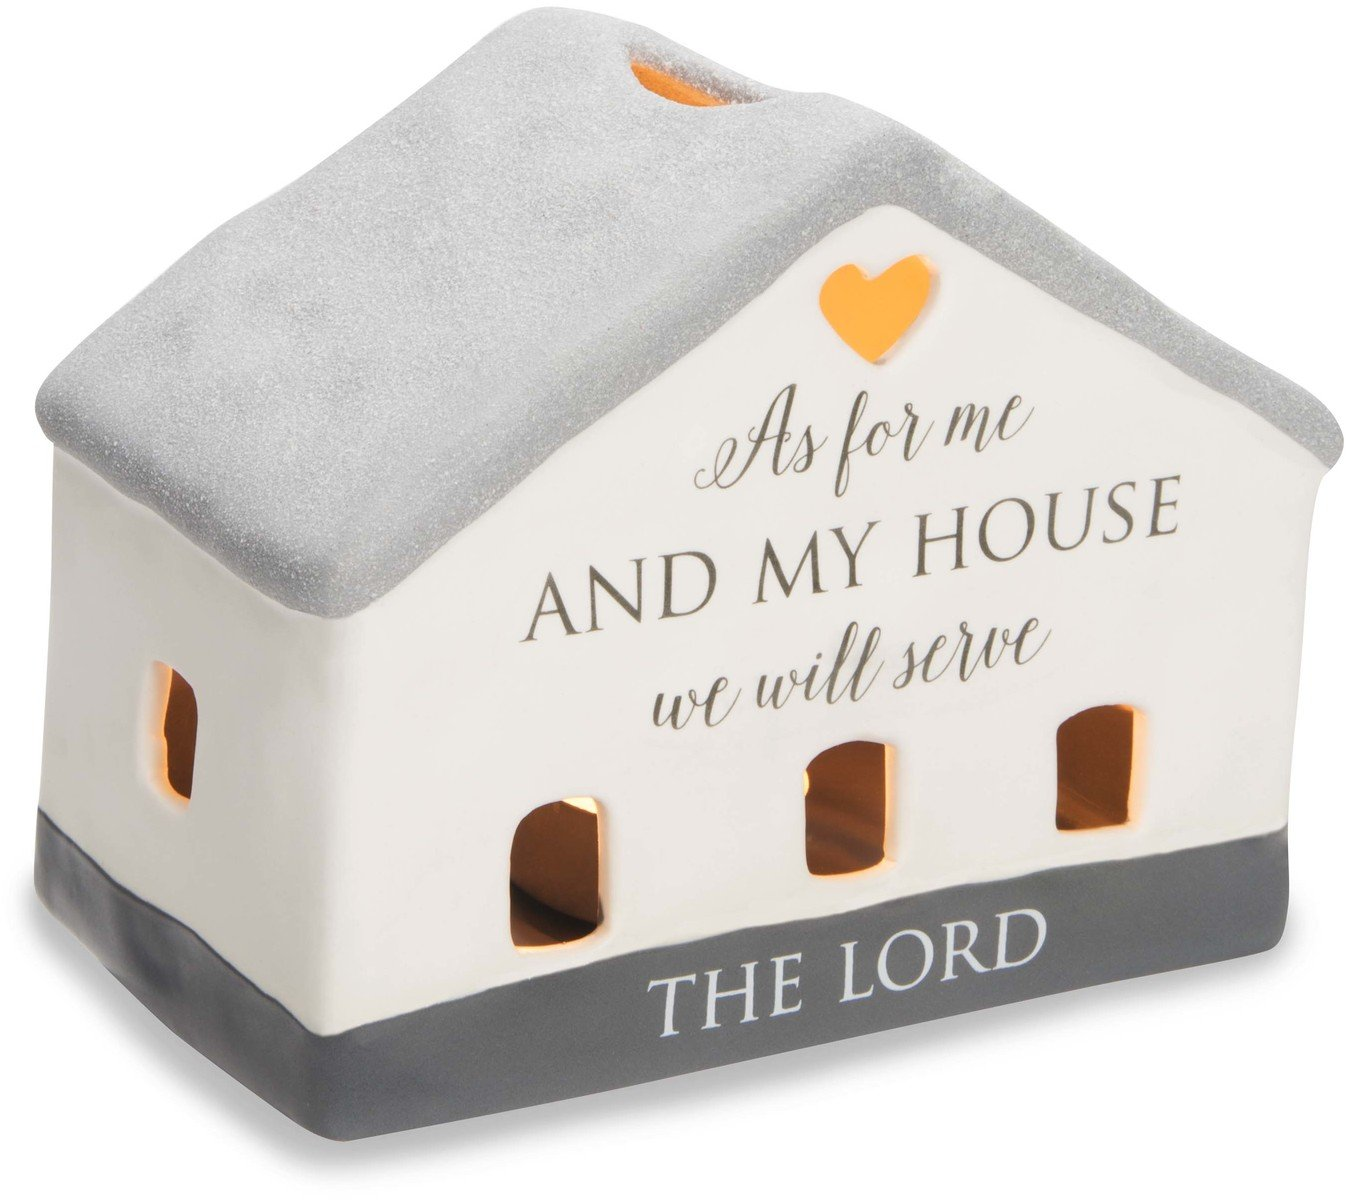 Pavilion Gift Company 86207 Love Lives Here - As For Me & My Home We Will Serve The Lord Porcelain House Candle Holder